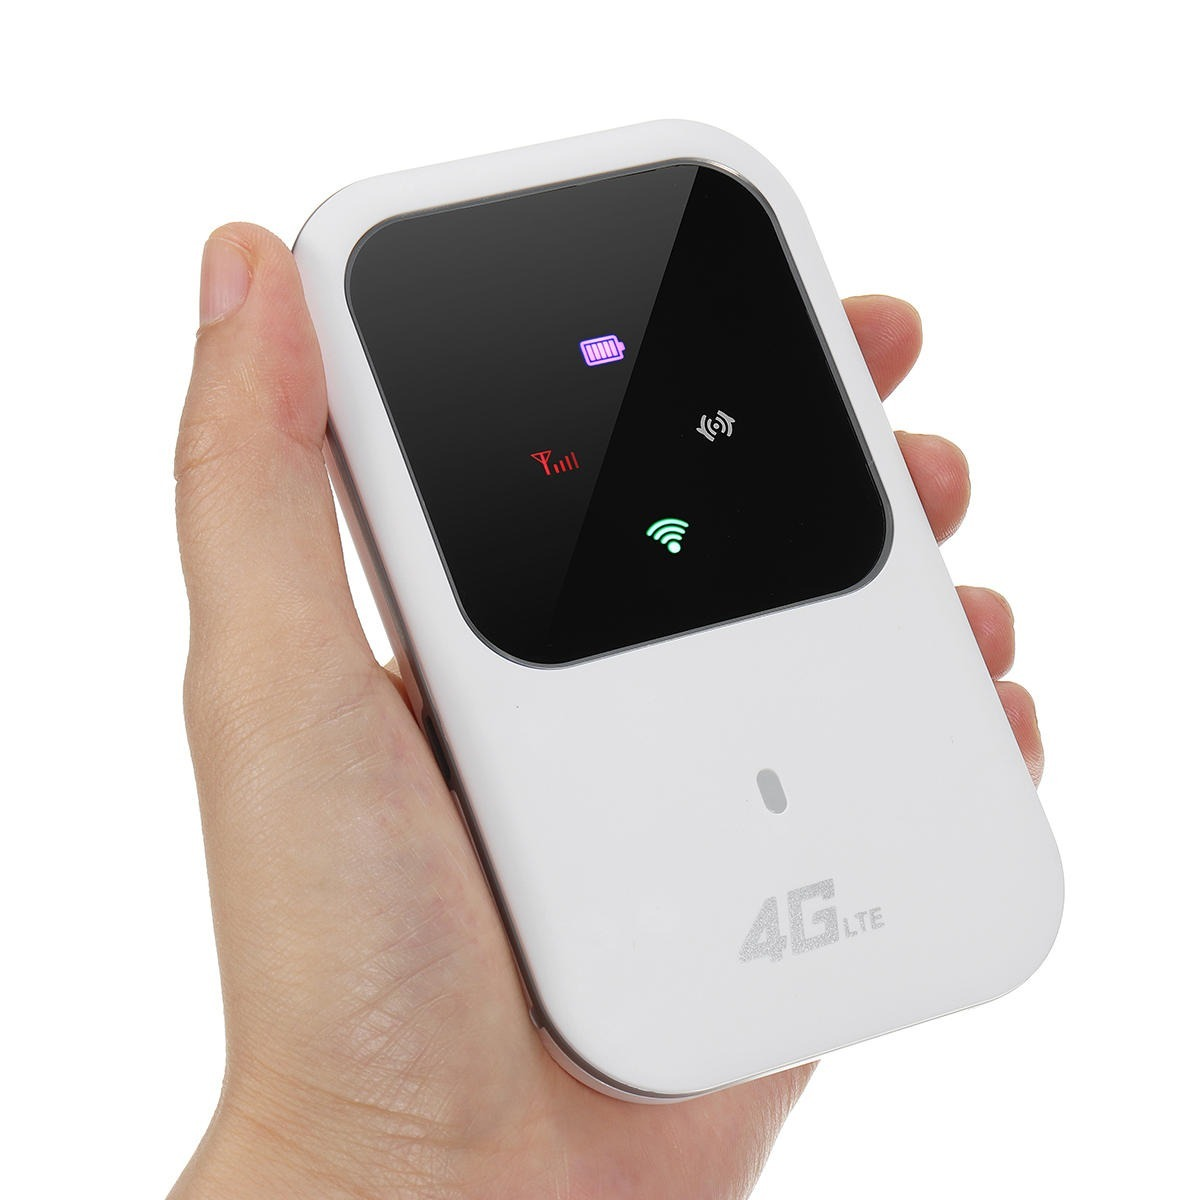 Multi Bam Internet Wifi Portatil 4g Lte Zte Airtel Mf920v Gs